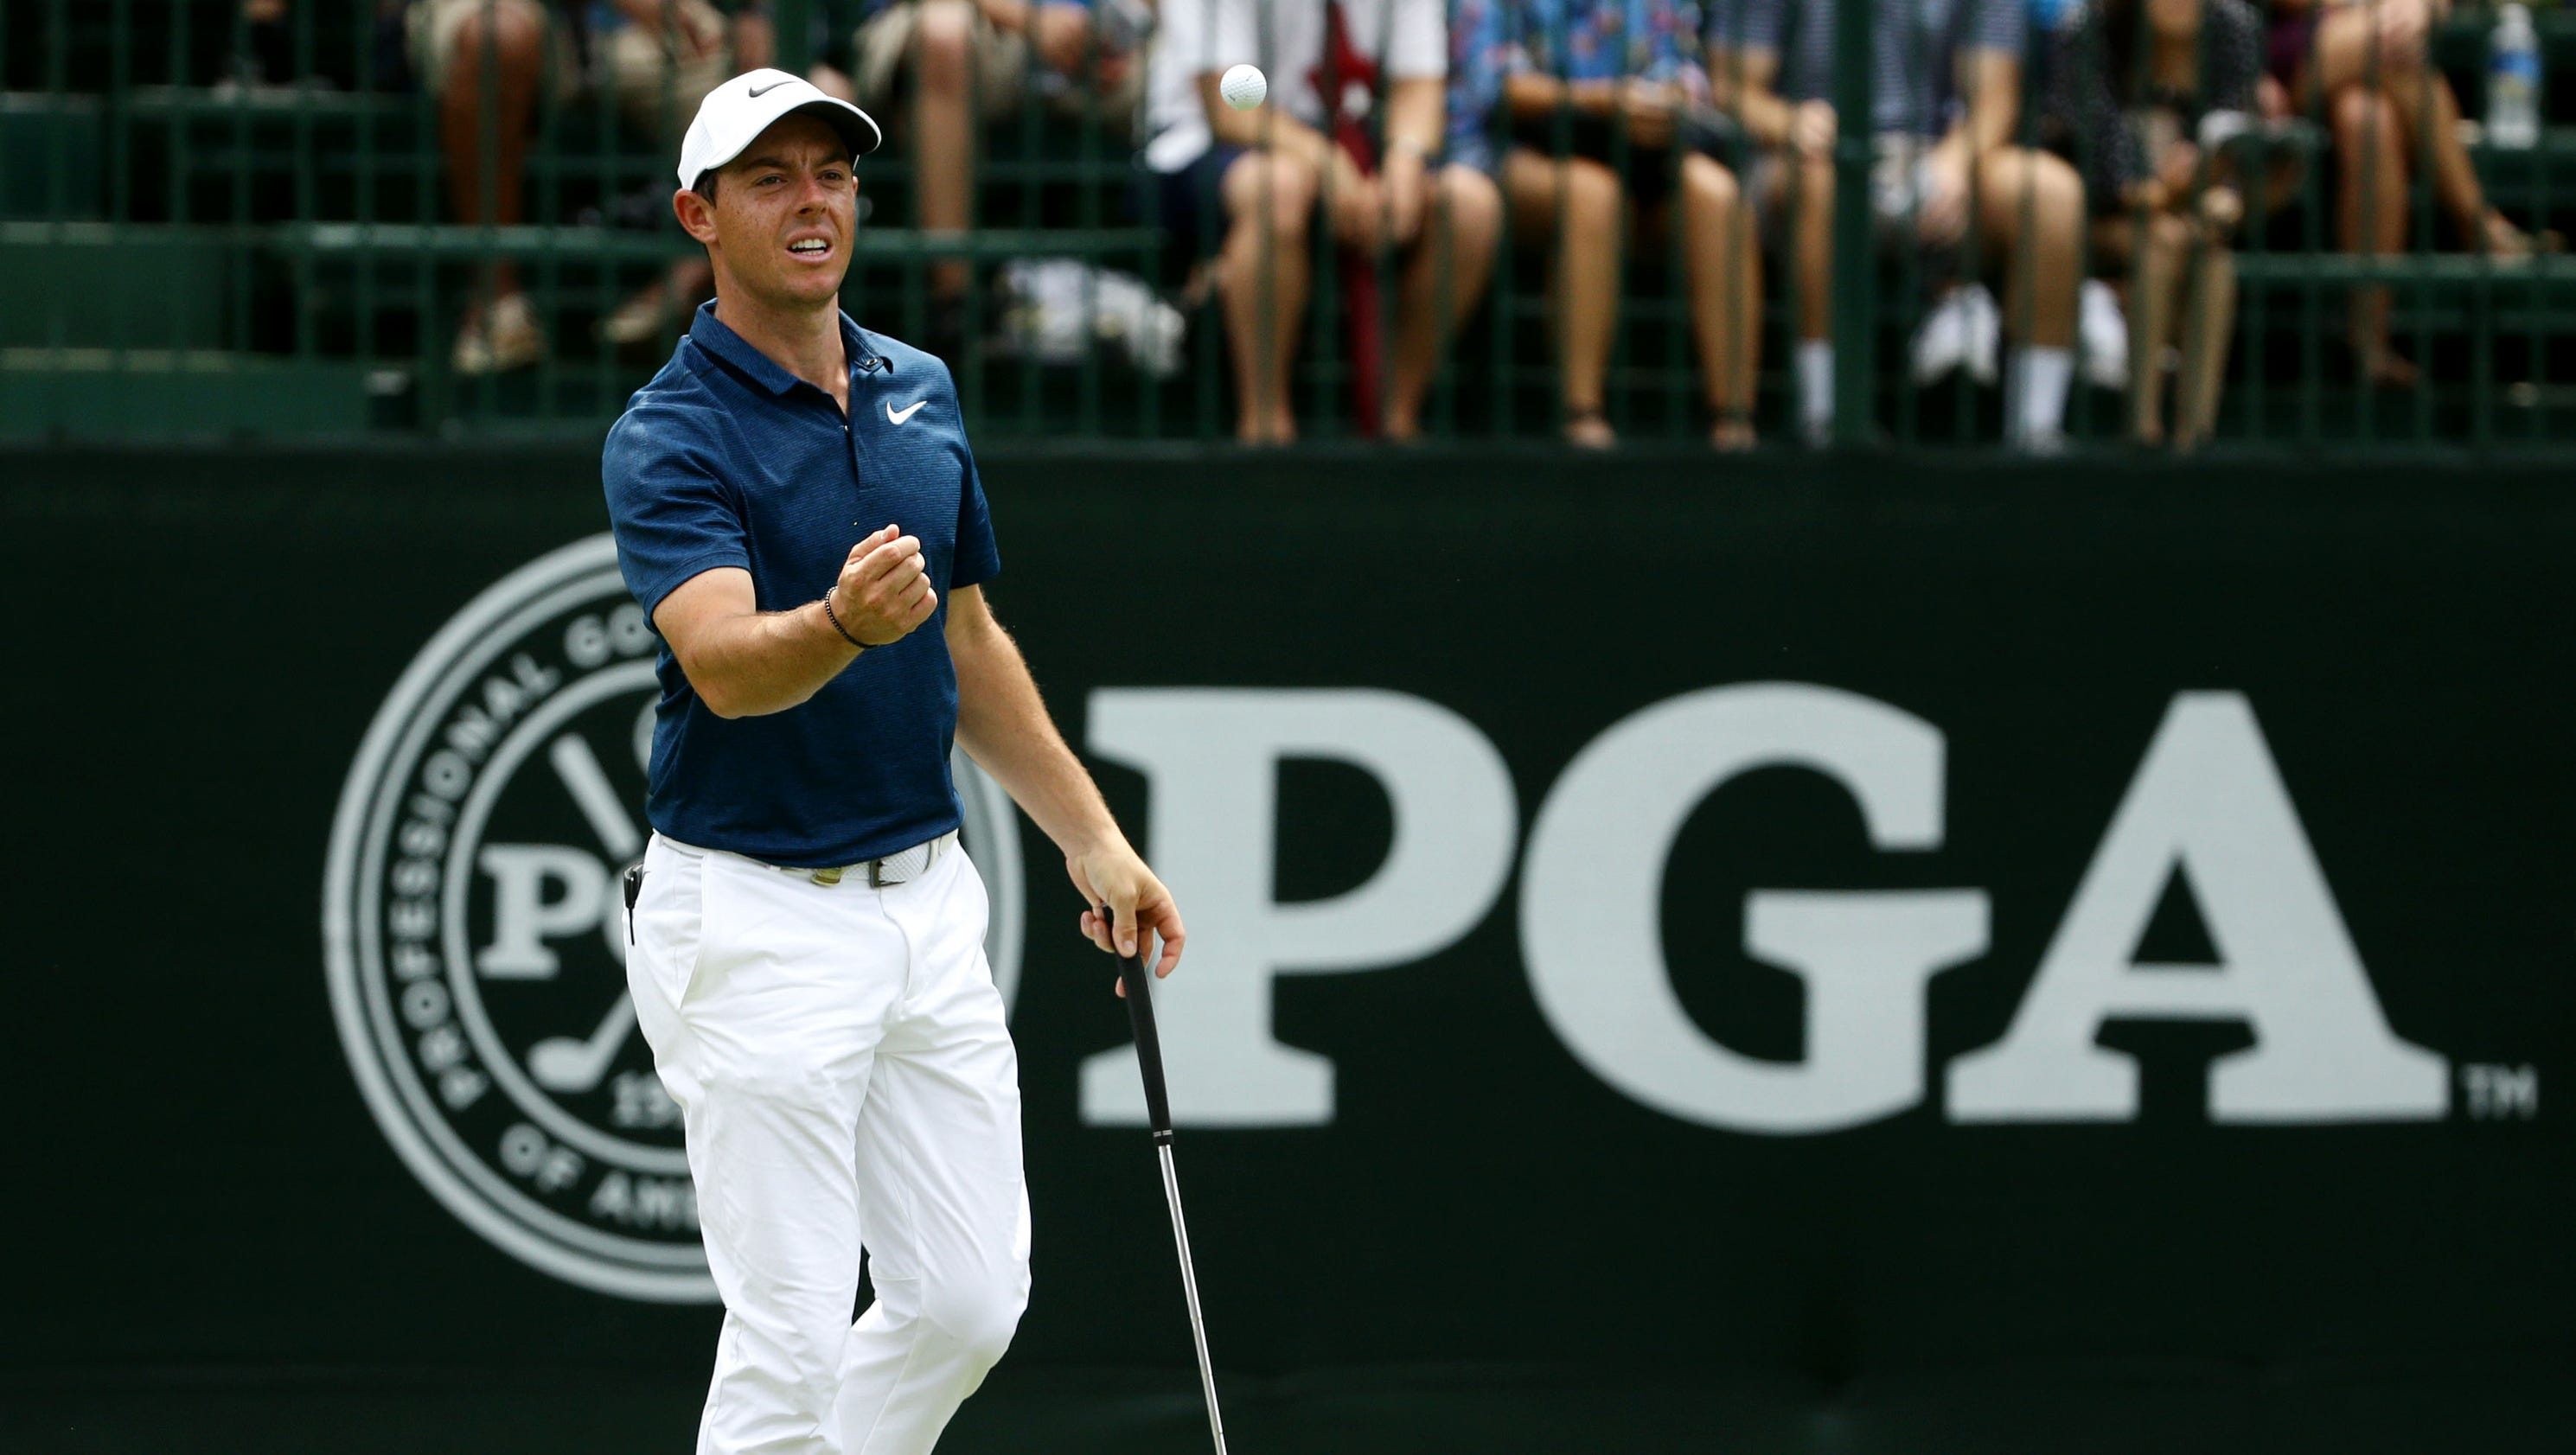 pga tour  rory mcilroy wants to win before shutting down